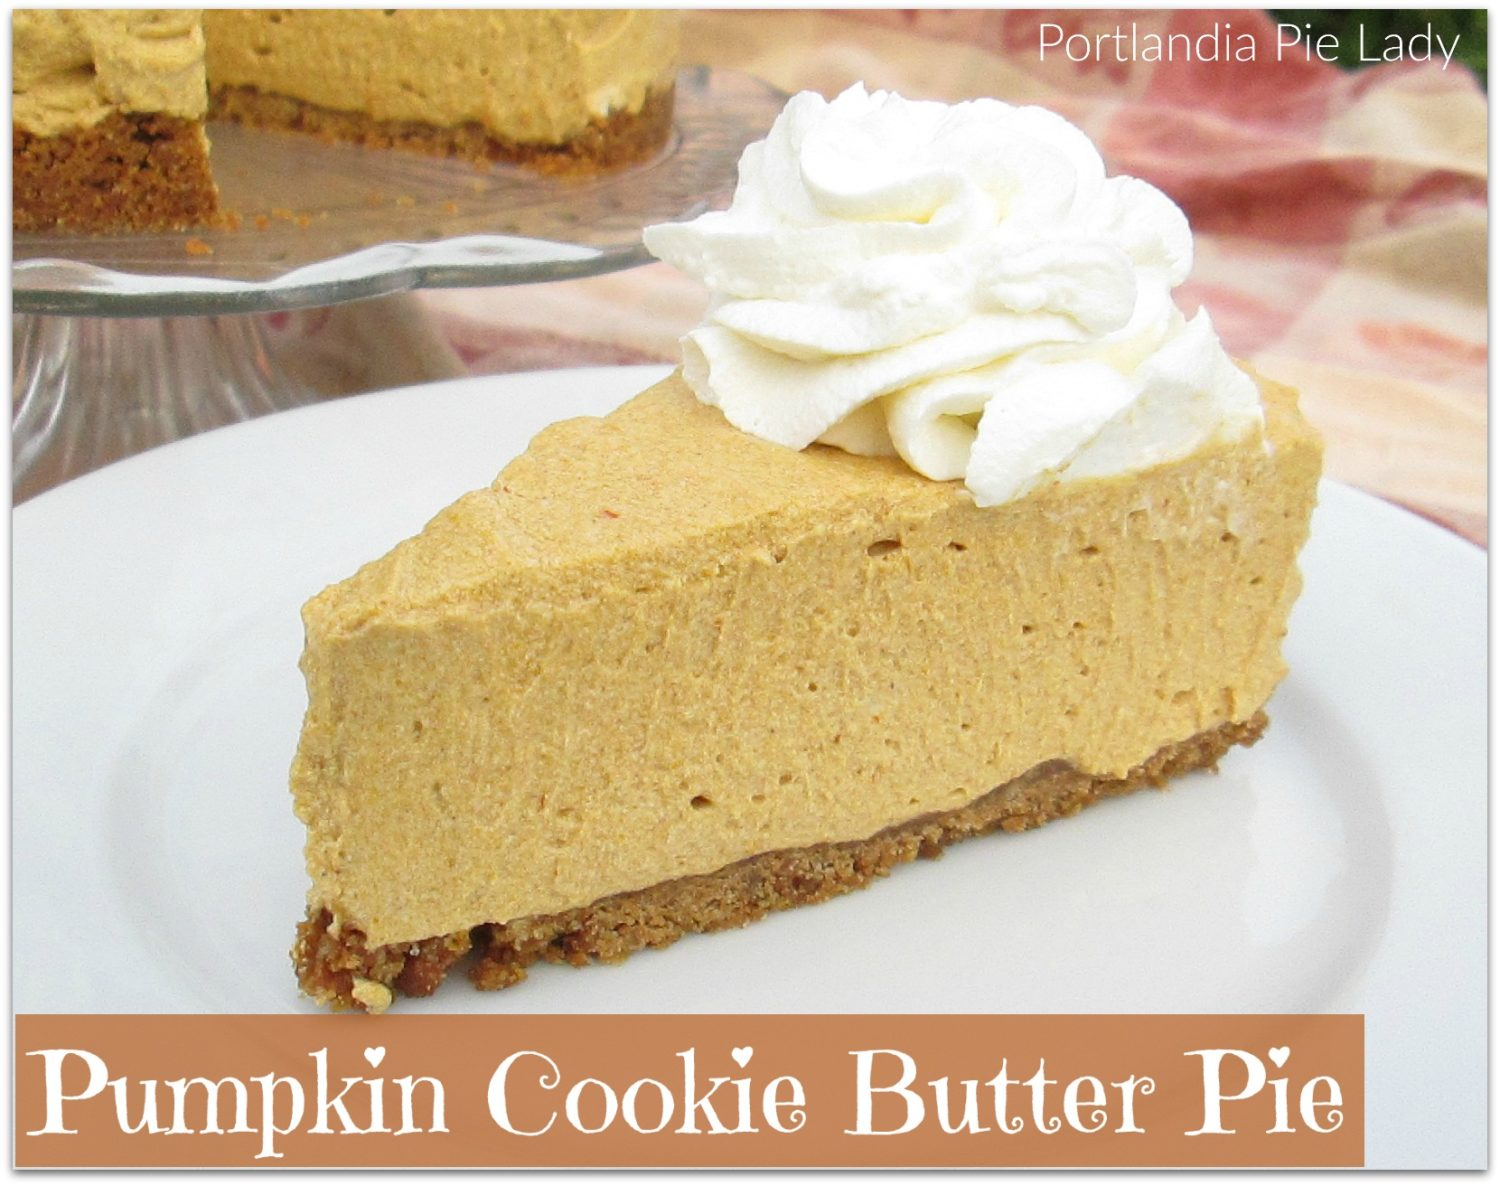 Pumpkin Cookie Butter Pie is spicy, creamy, and decadent with a healthy amount of rich cookie butter, all held together with a gingersnap cookie crust.